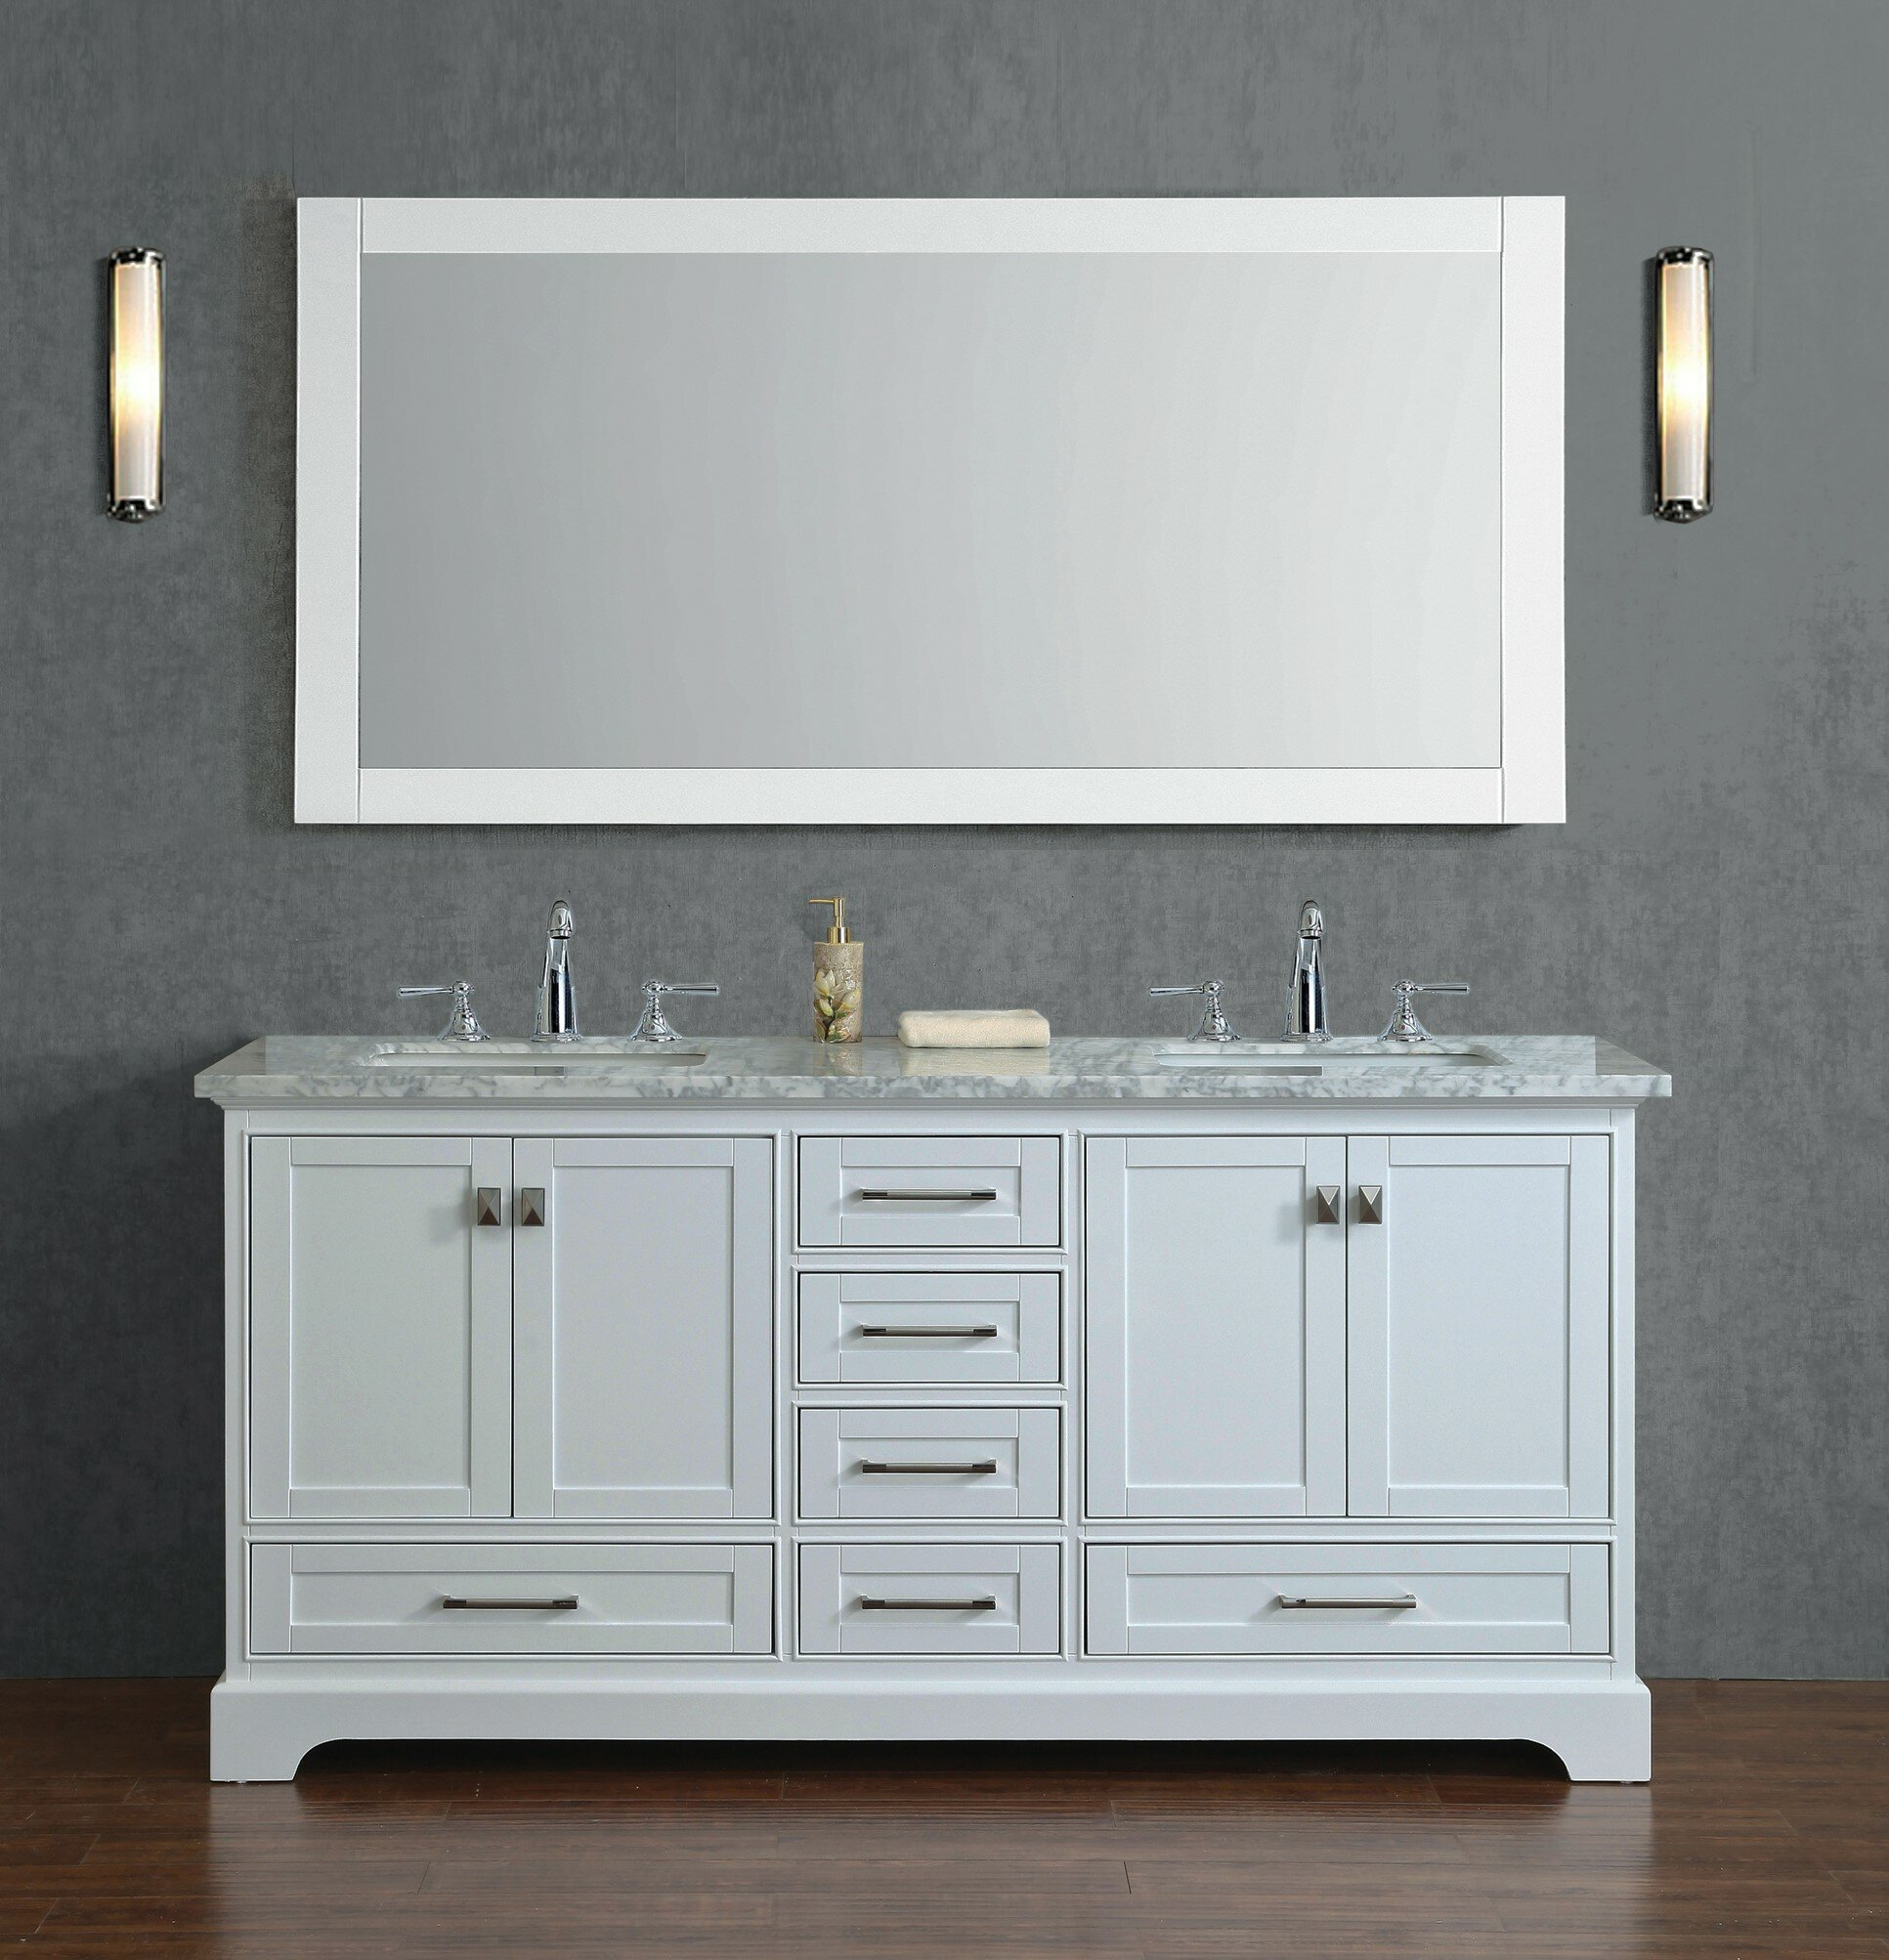 Willa Arlo Interiors Stian 72 Double Bathroom Vanity Set With Mirror Reviews Wayfair